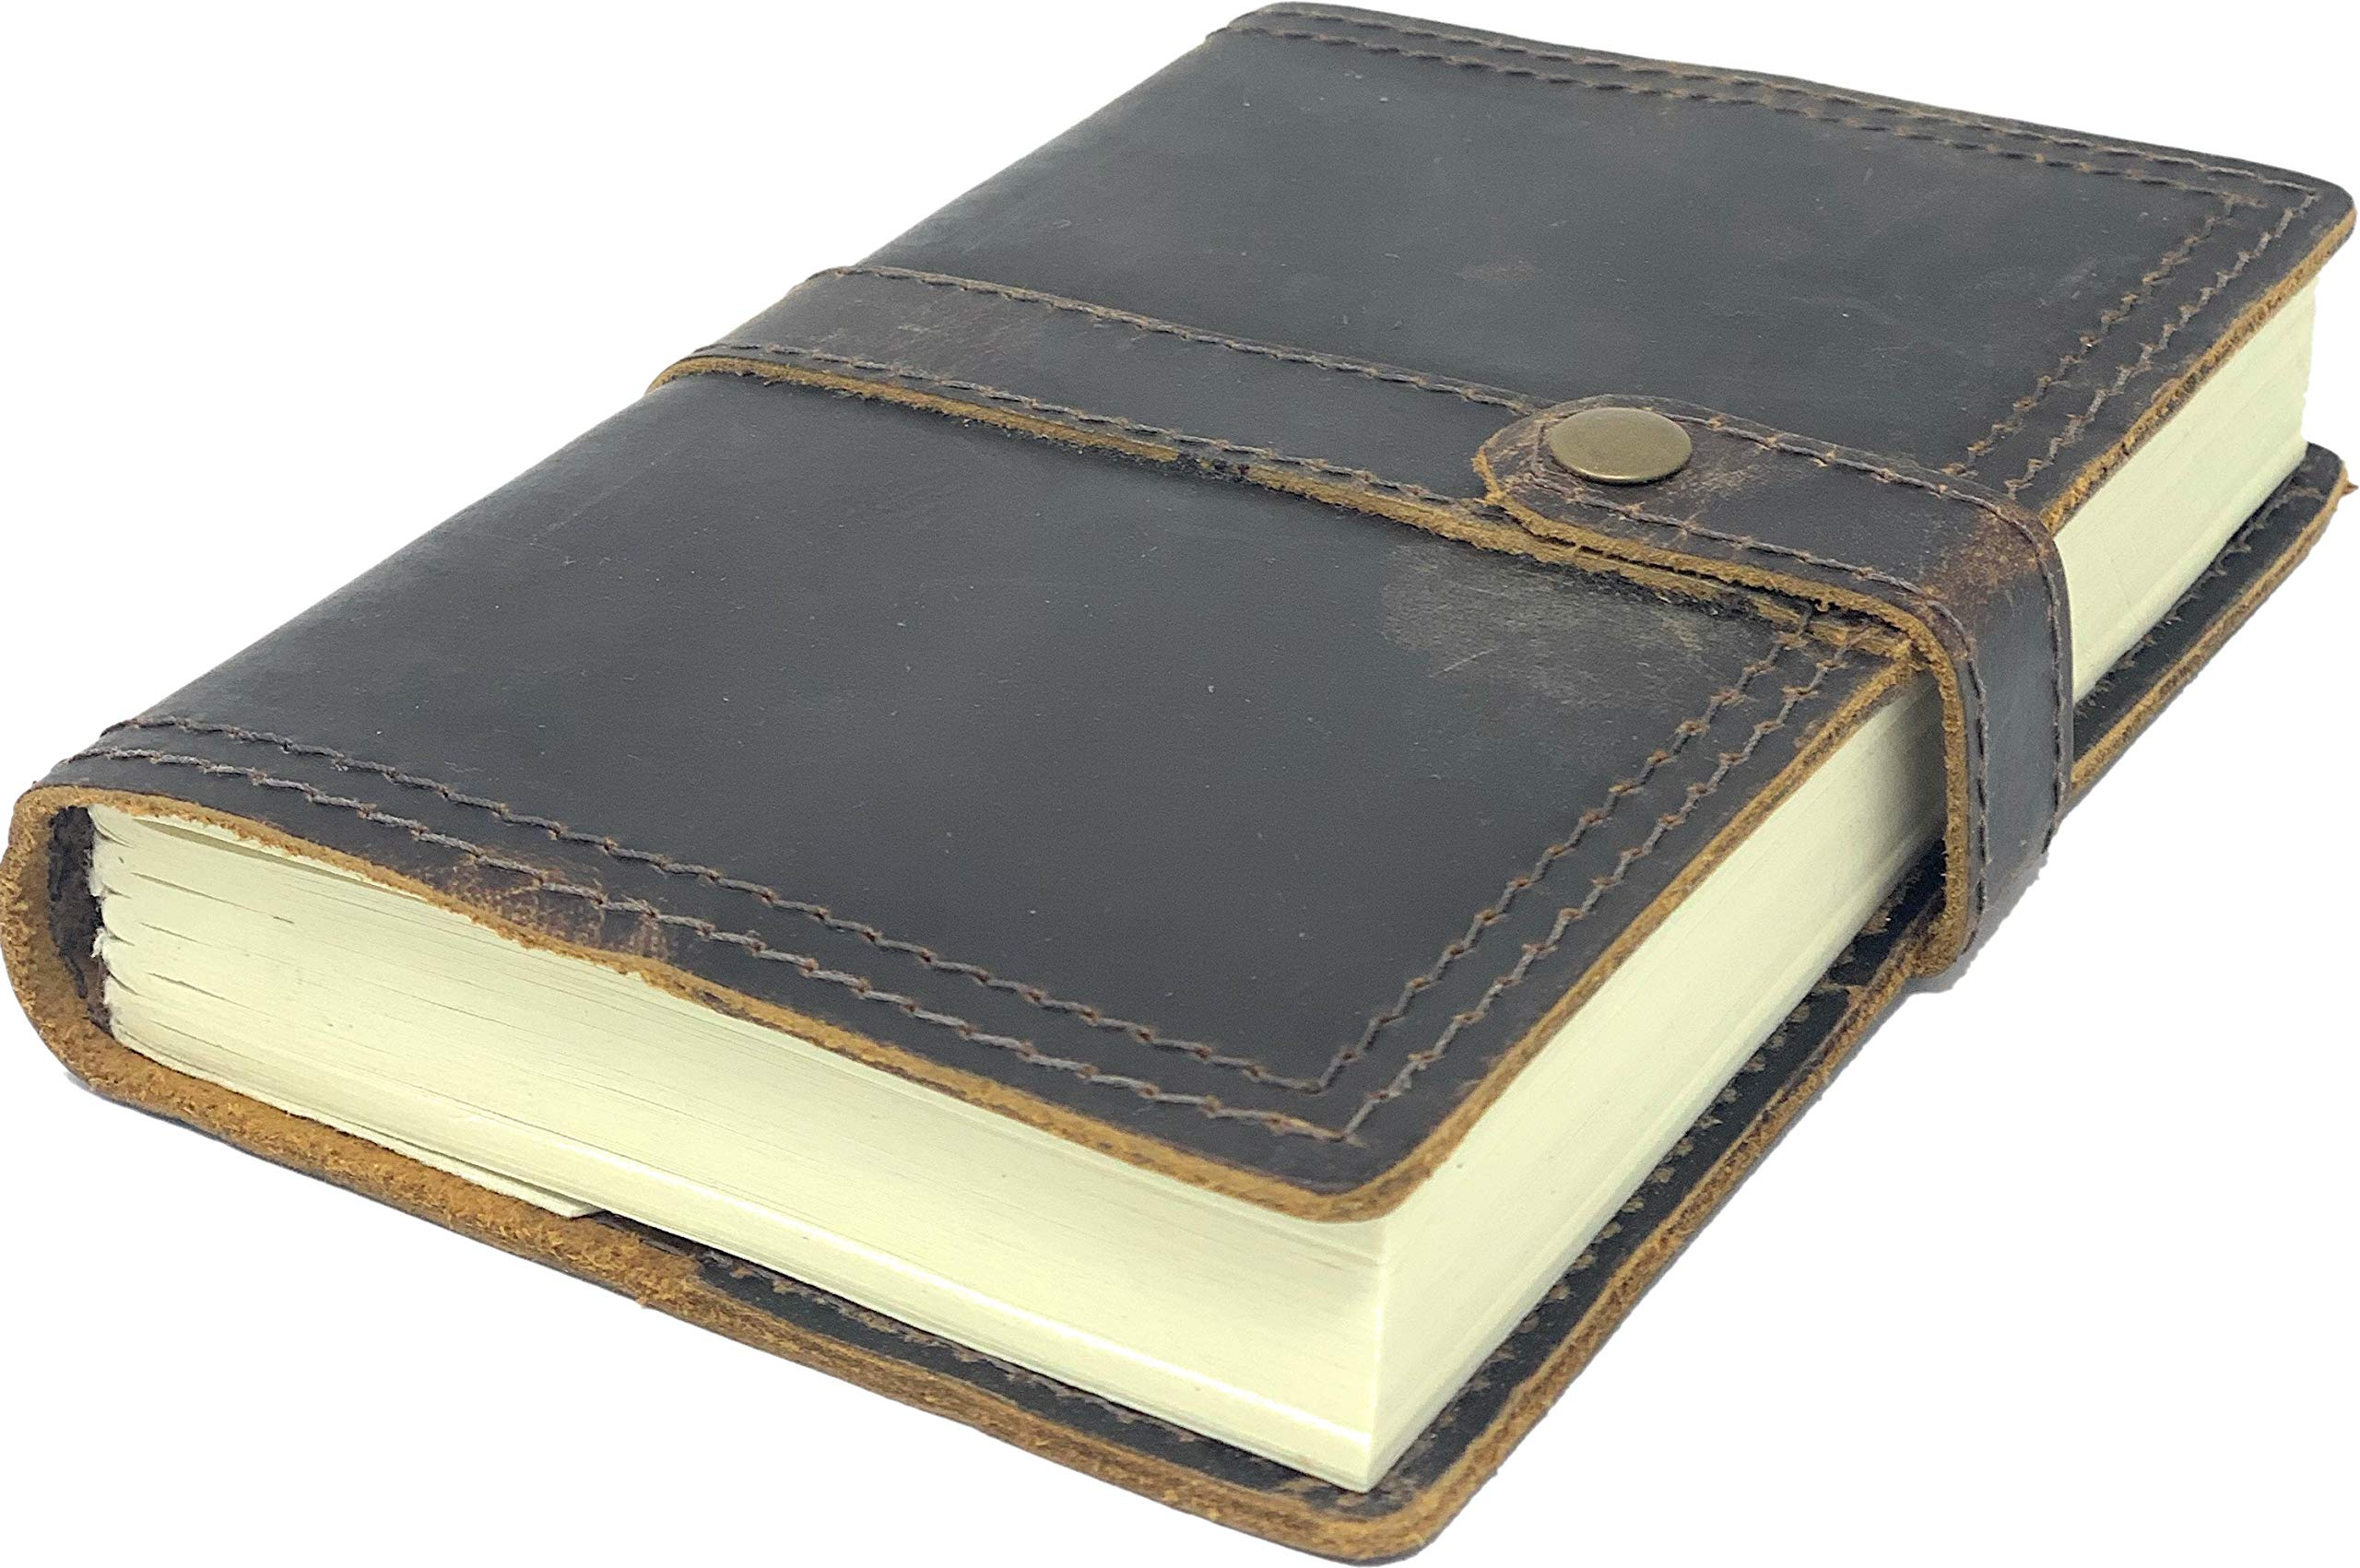 Tuk Tuk Press, Ranger Edition, Handmade Buffalo Leather Journal, Rustic Weathered Design, 200 Tree Free Thick Recycled Blank Cotton Pages, Refillable, (7 Inches x 5 Inches)